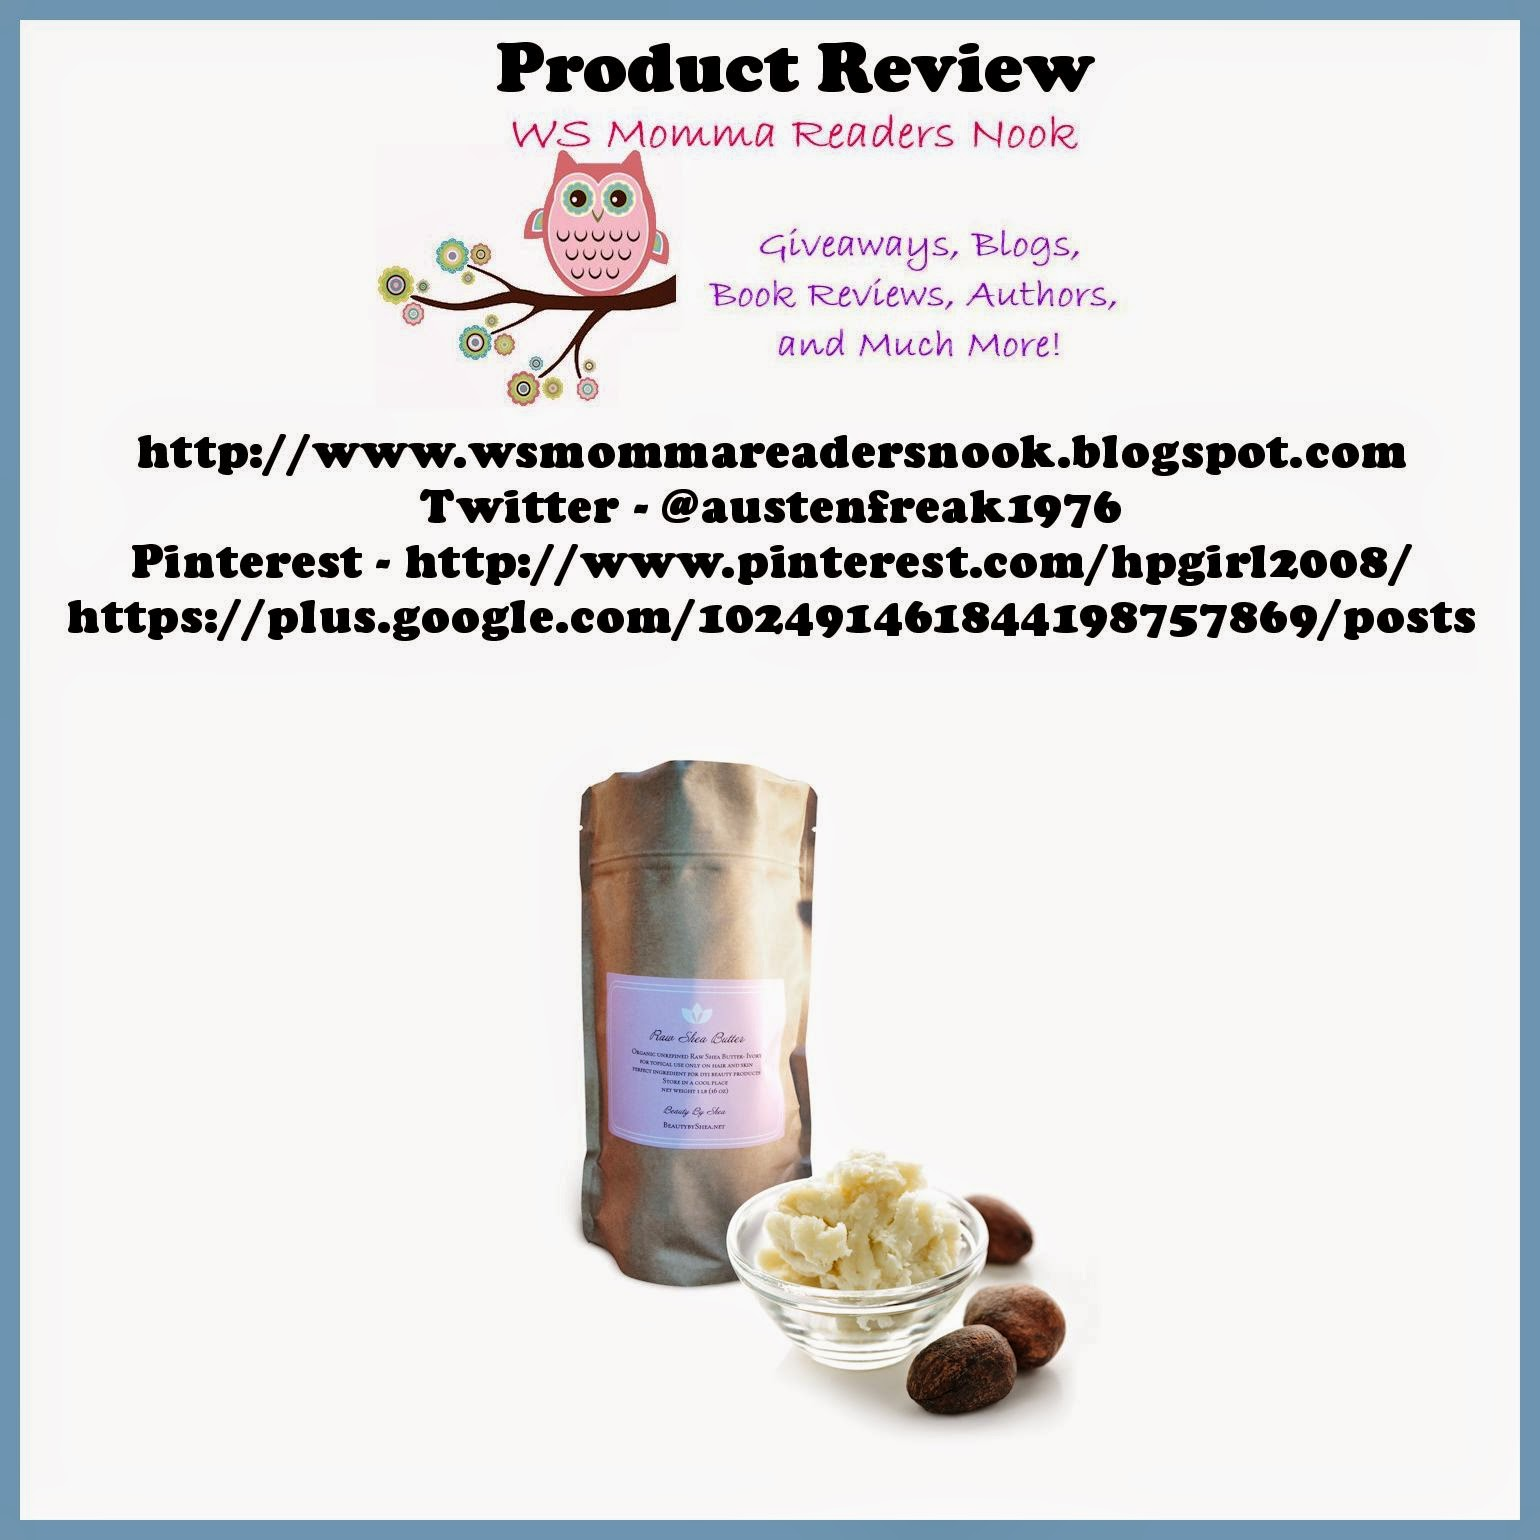 http://www.amazon.com/Organic-Unrefined-Shea-Naturally-Vitamins/dp/B00LLPT4HI/ref=sr_1_3?ie=UTF8&qid=1407388528&sr=8-3&keywords=beauty+by+shea